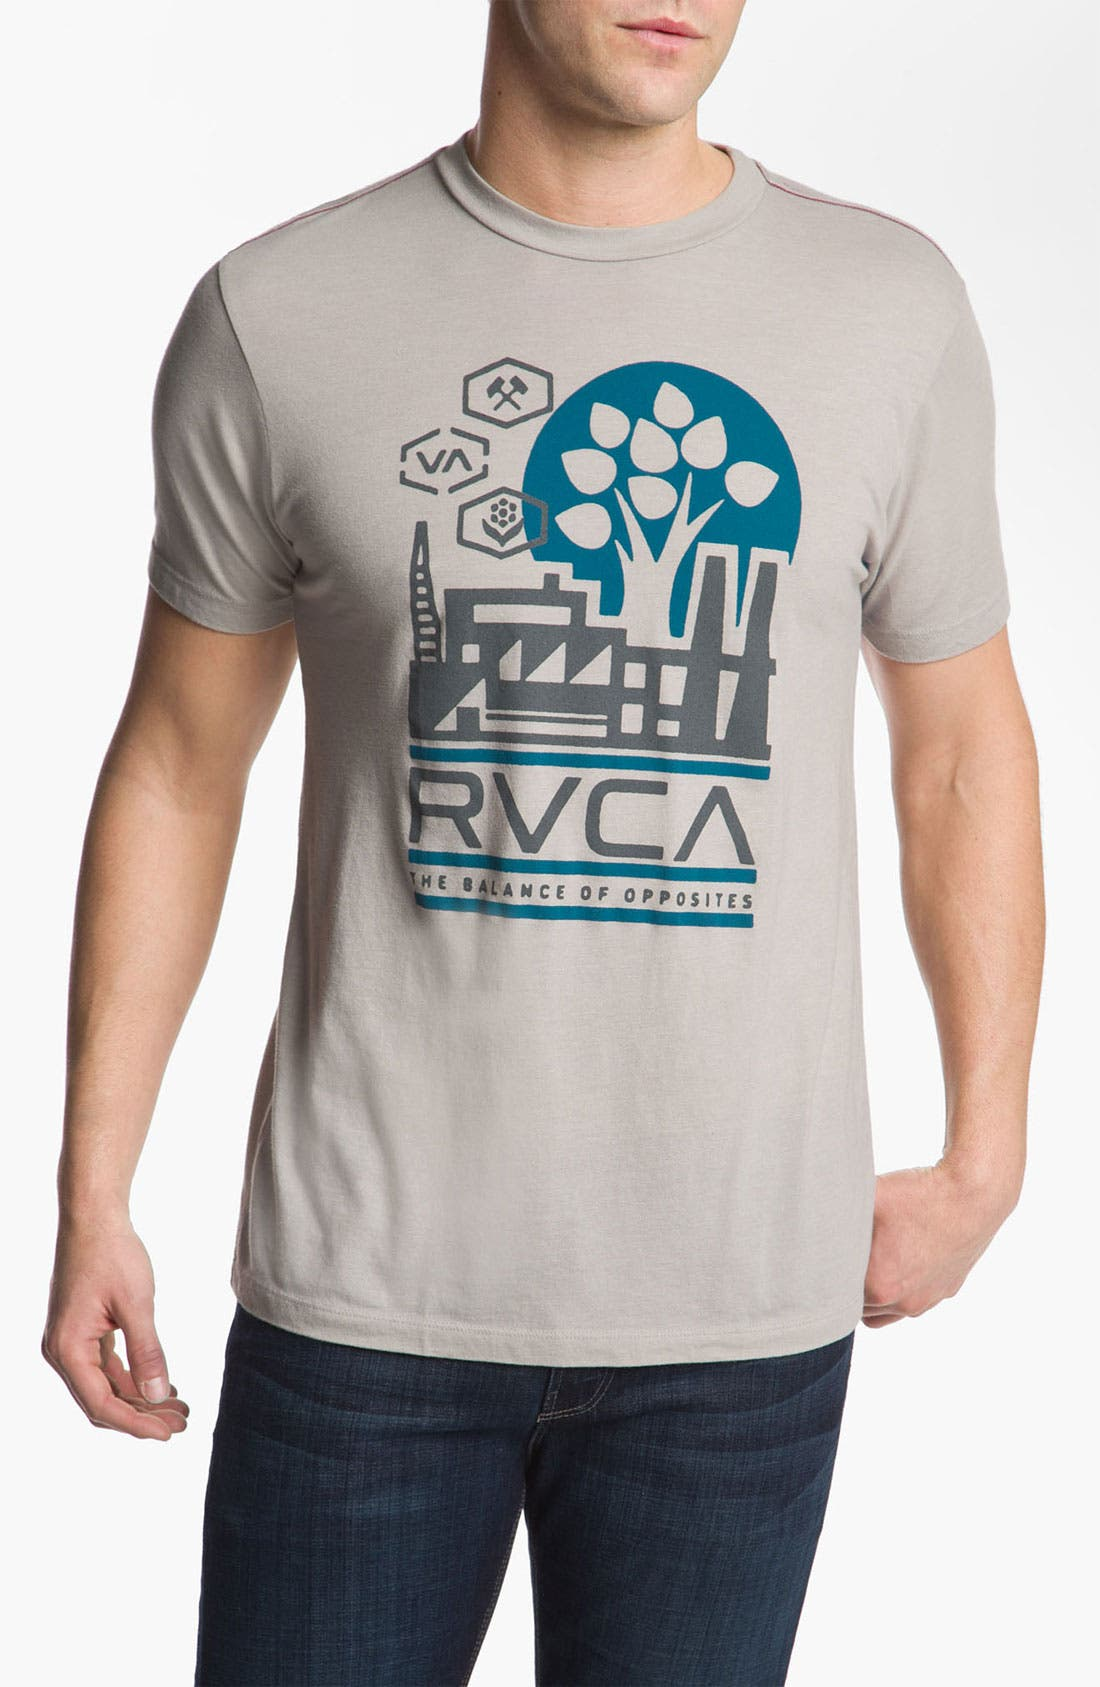 Alternate Image 1 Selected - RVCA 'Construct' Vintage Wash T-Shirt